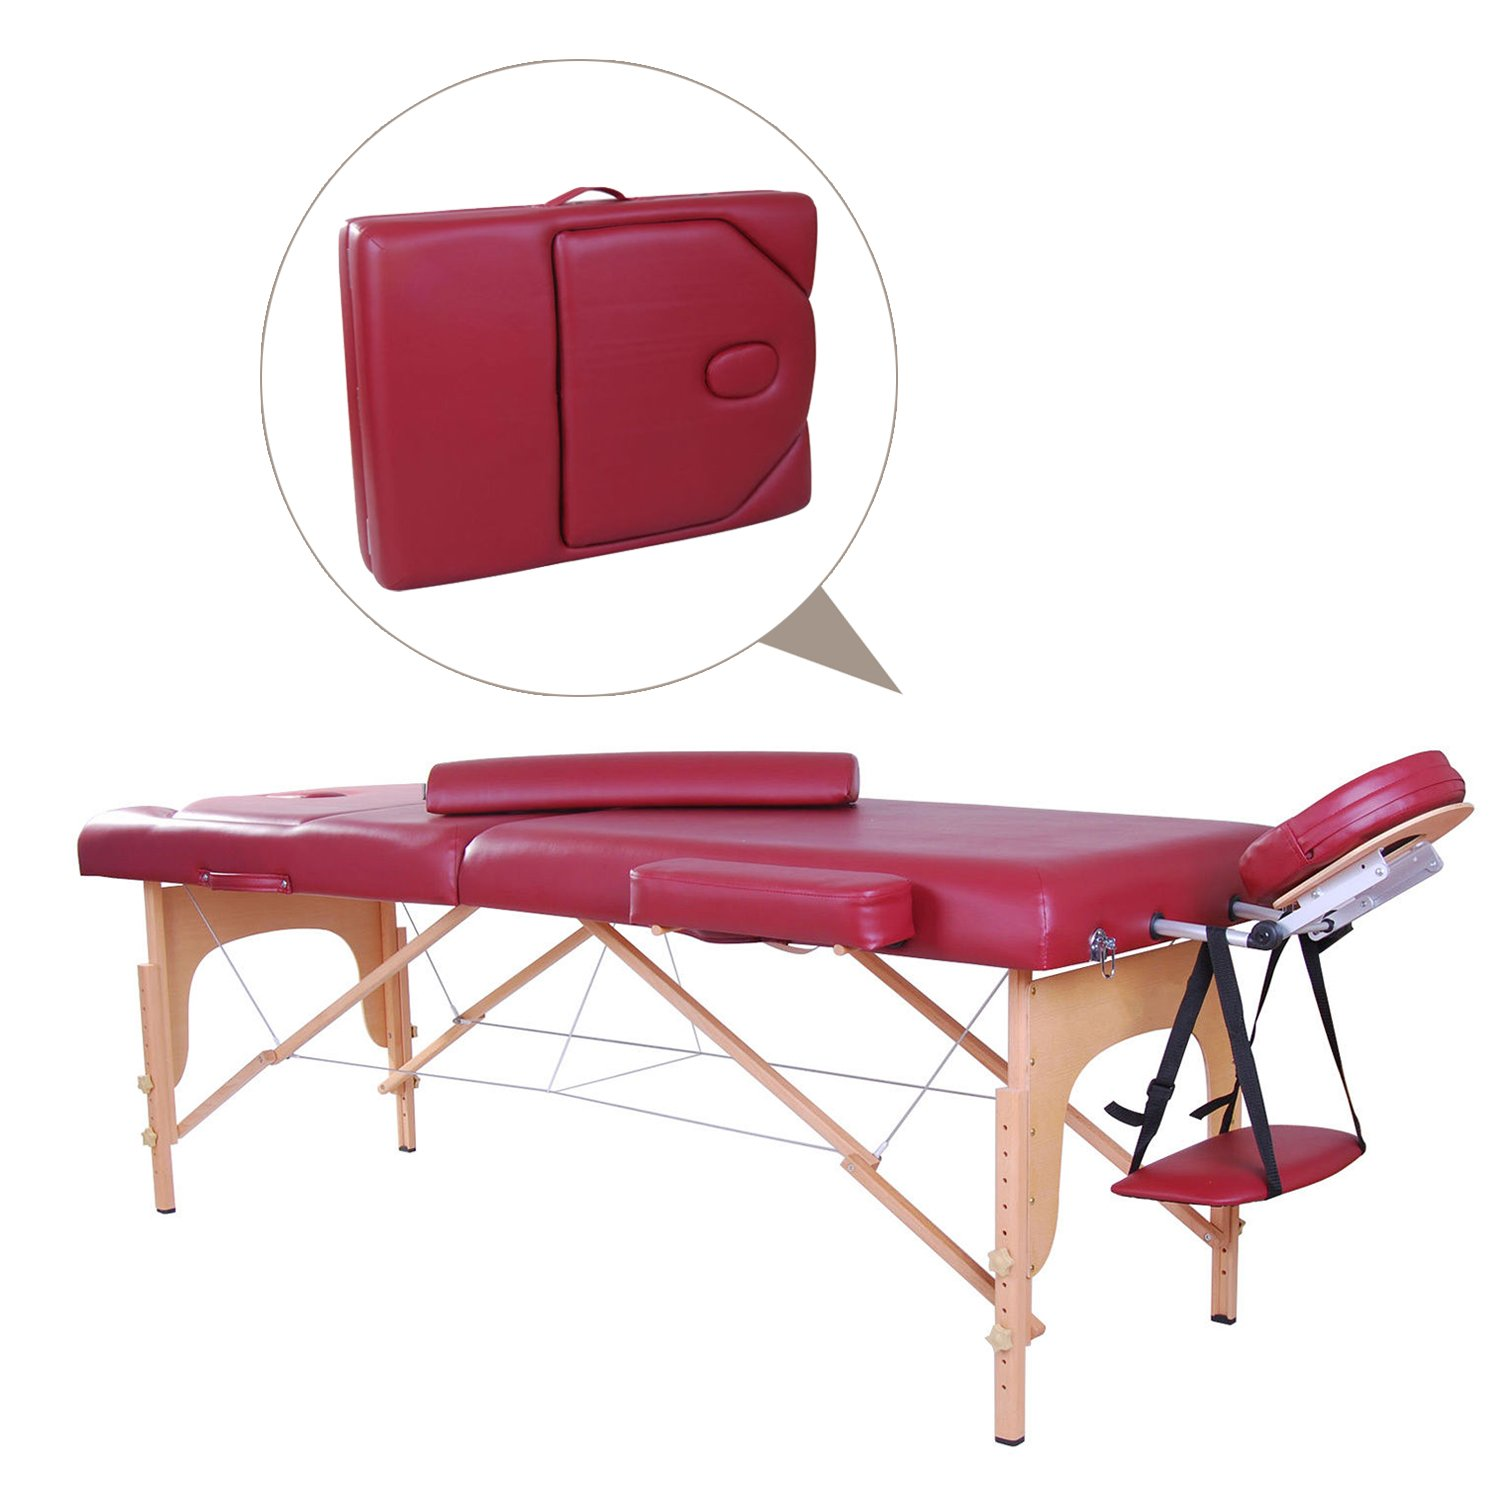 Soozier 91inch Portable Massage Table Couch Spa Bed 3 Fold 3inch Thick Padding (Rose) + Carrying Bag Aosom Canada